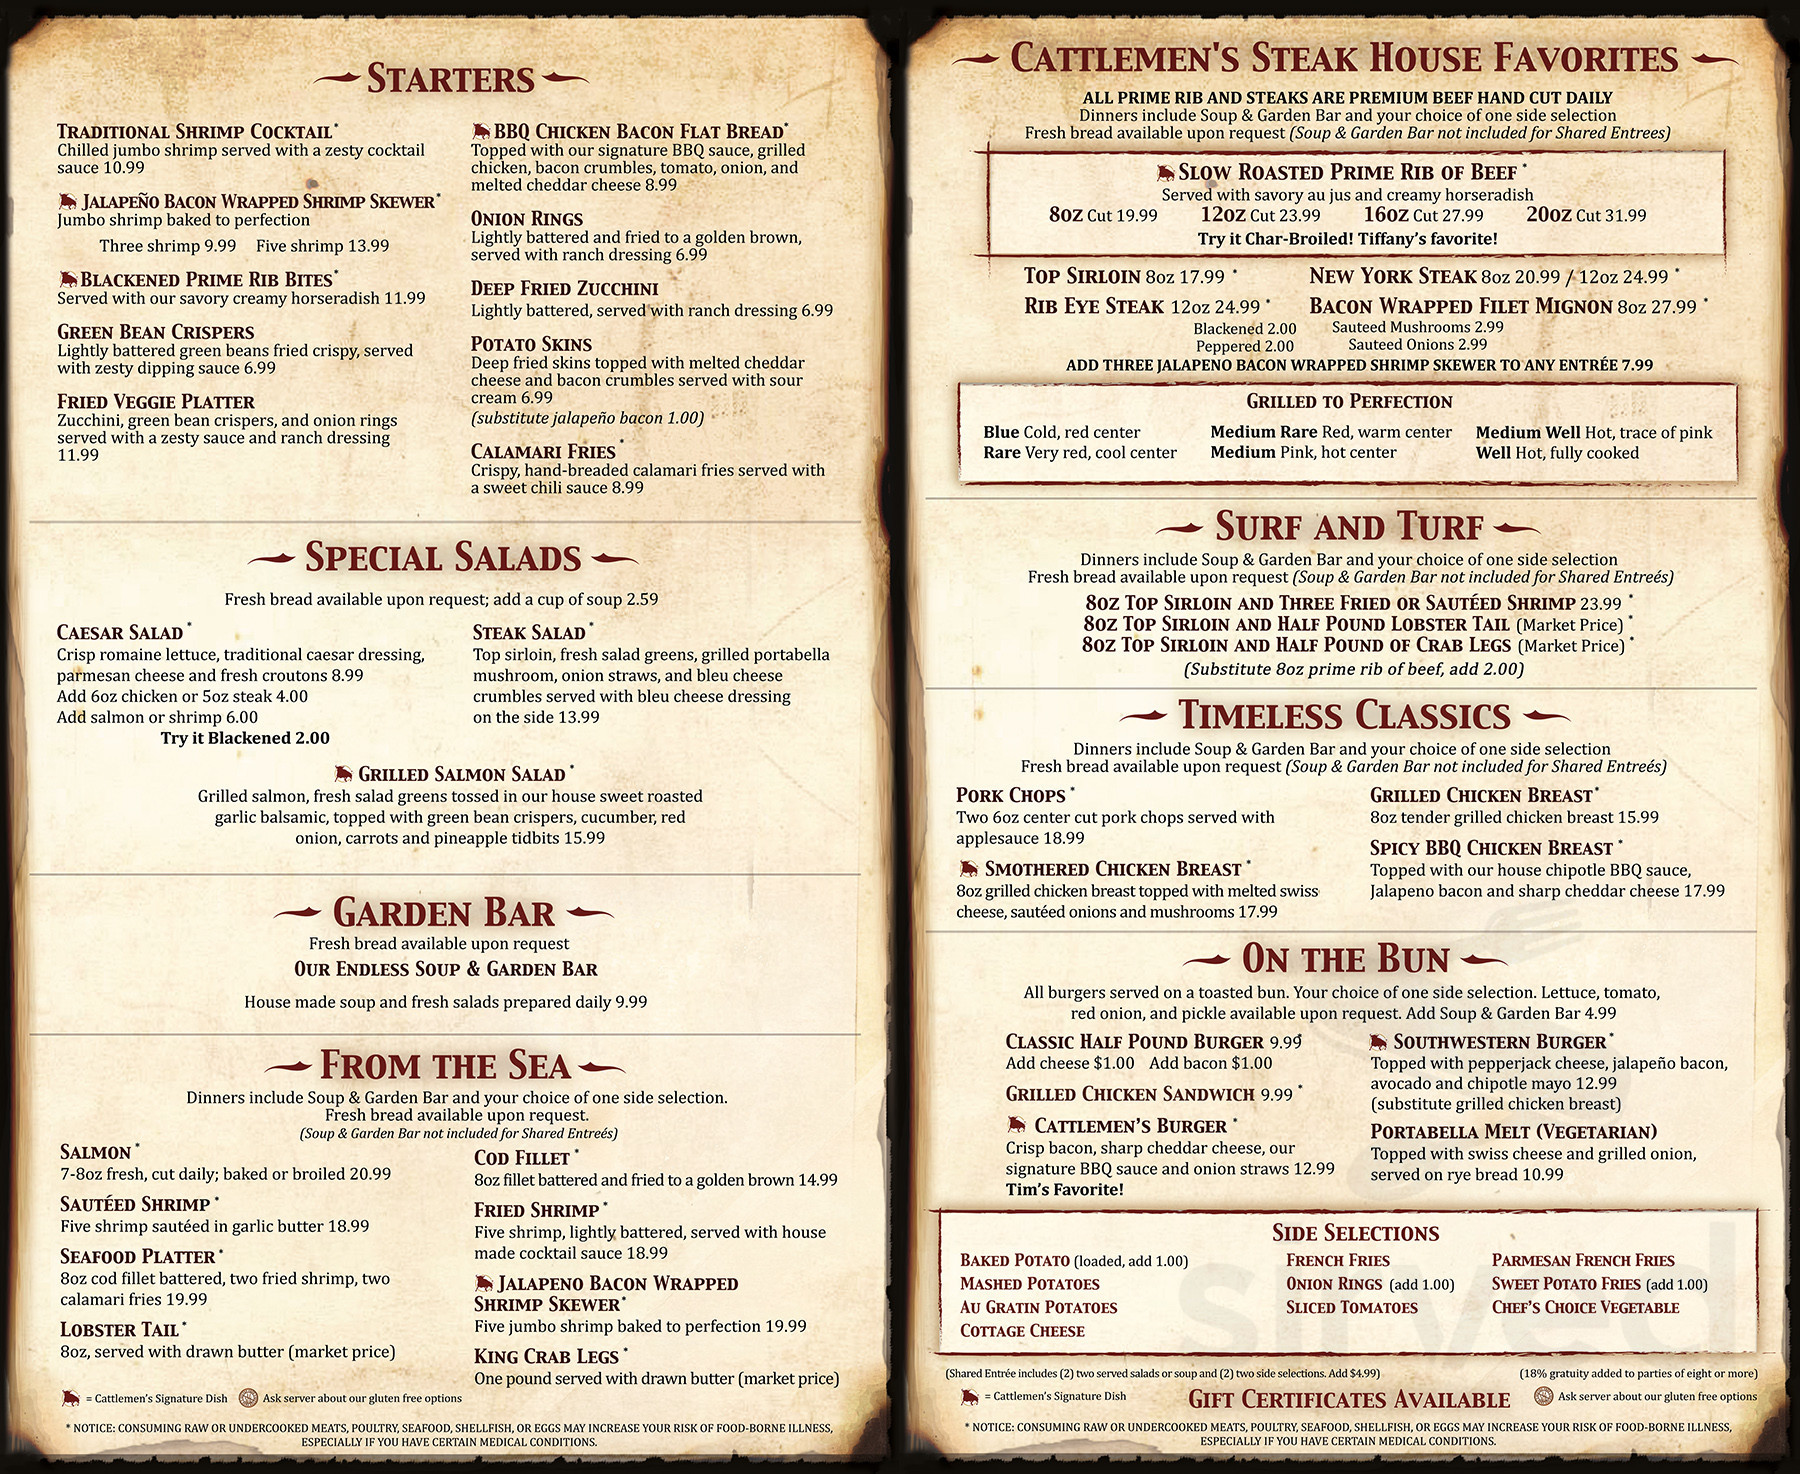 Menu for Cattlemen's Steakhouse & Lounge in Show Low, Arizona